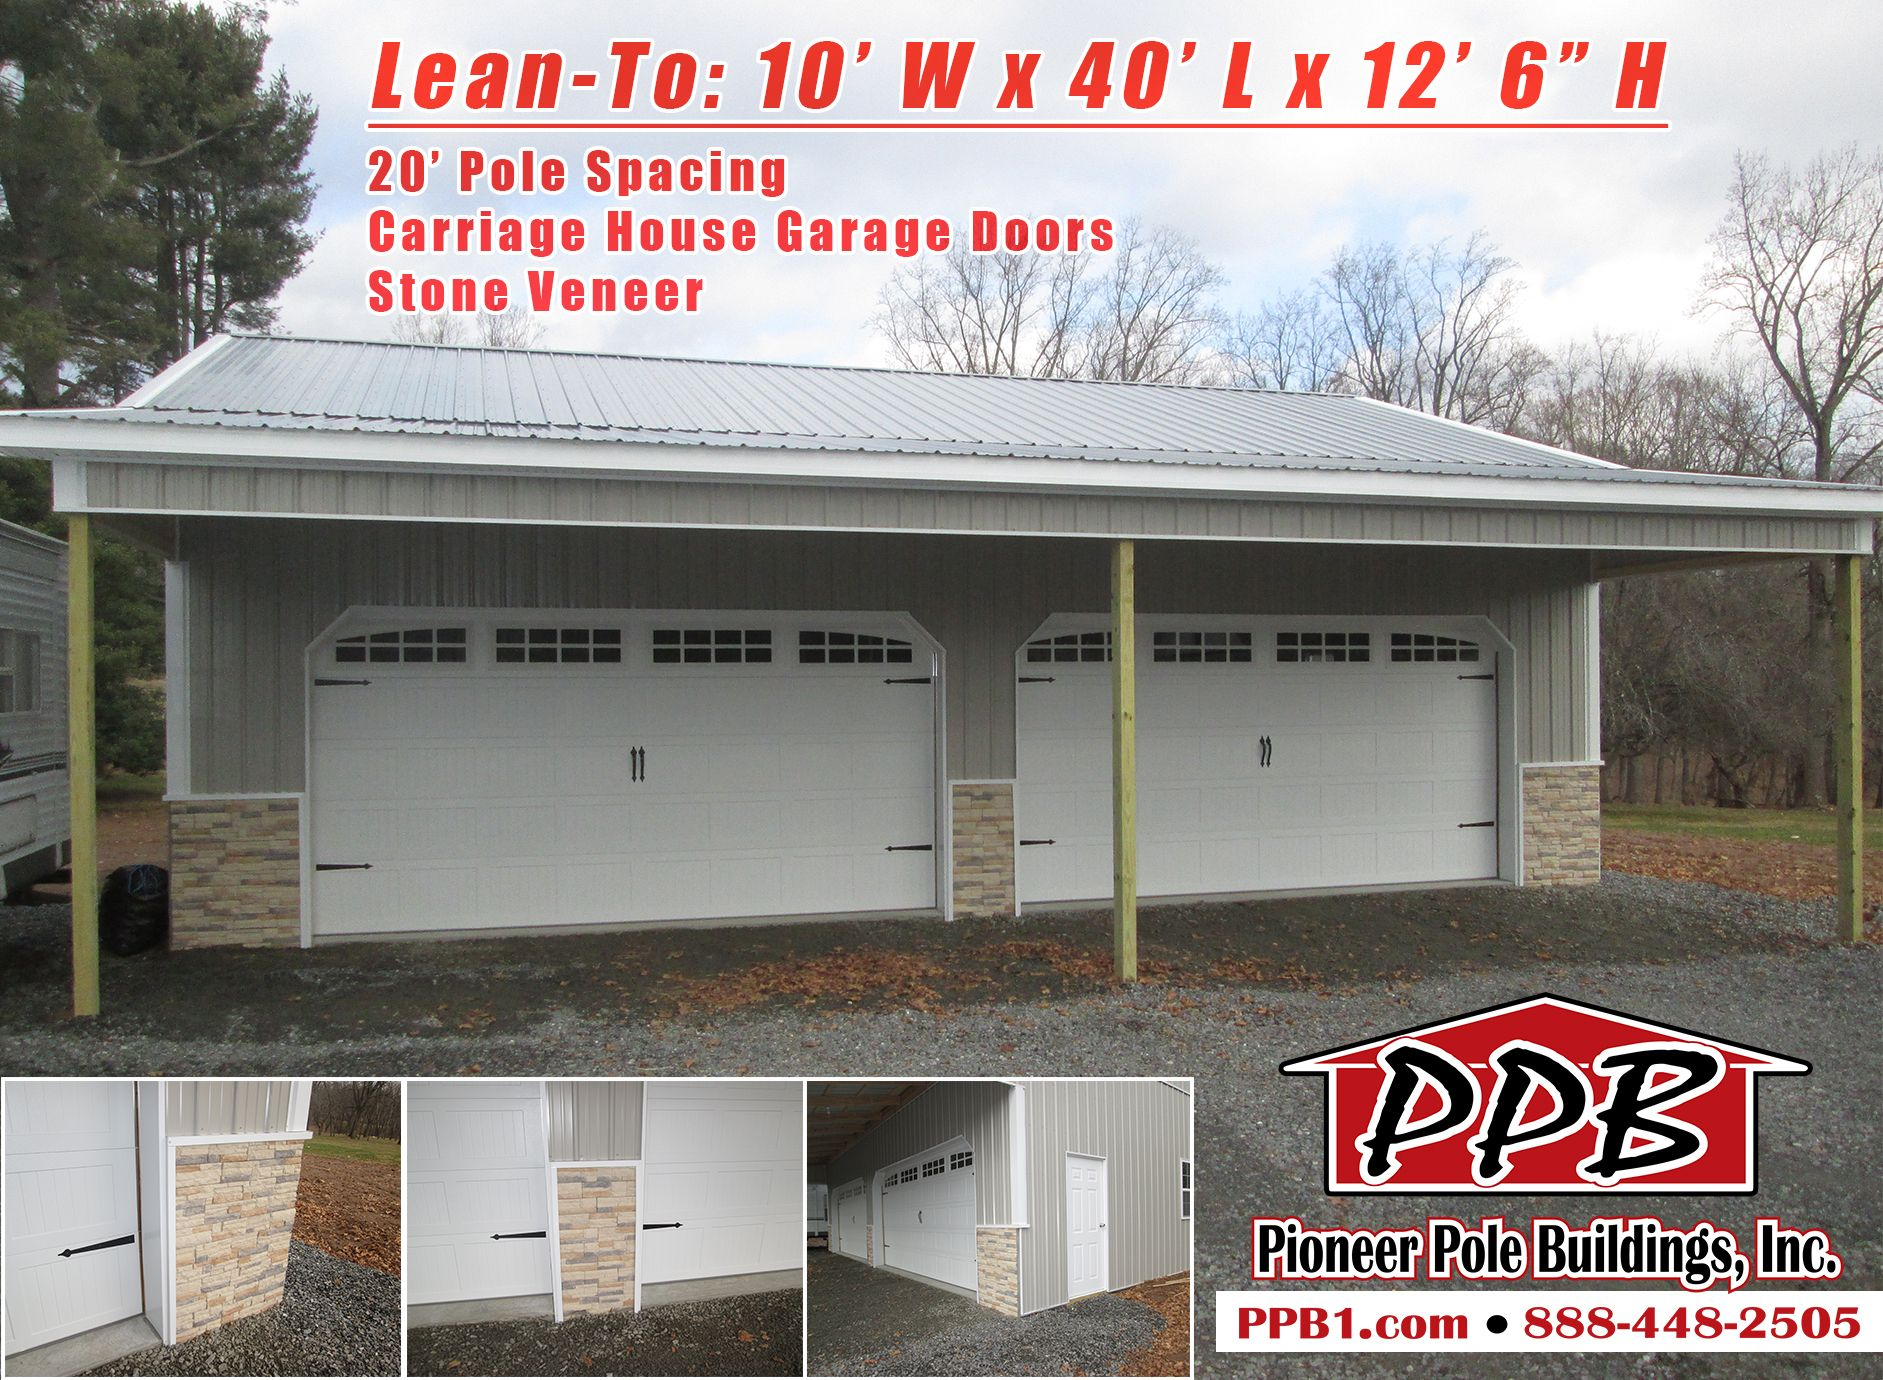 Lean to 10 39 w x 40 39 l x 12 39 6 h 20 39 pole spacing 2 16 for 4 car pole barn